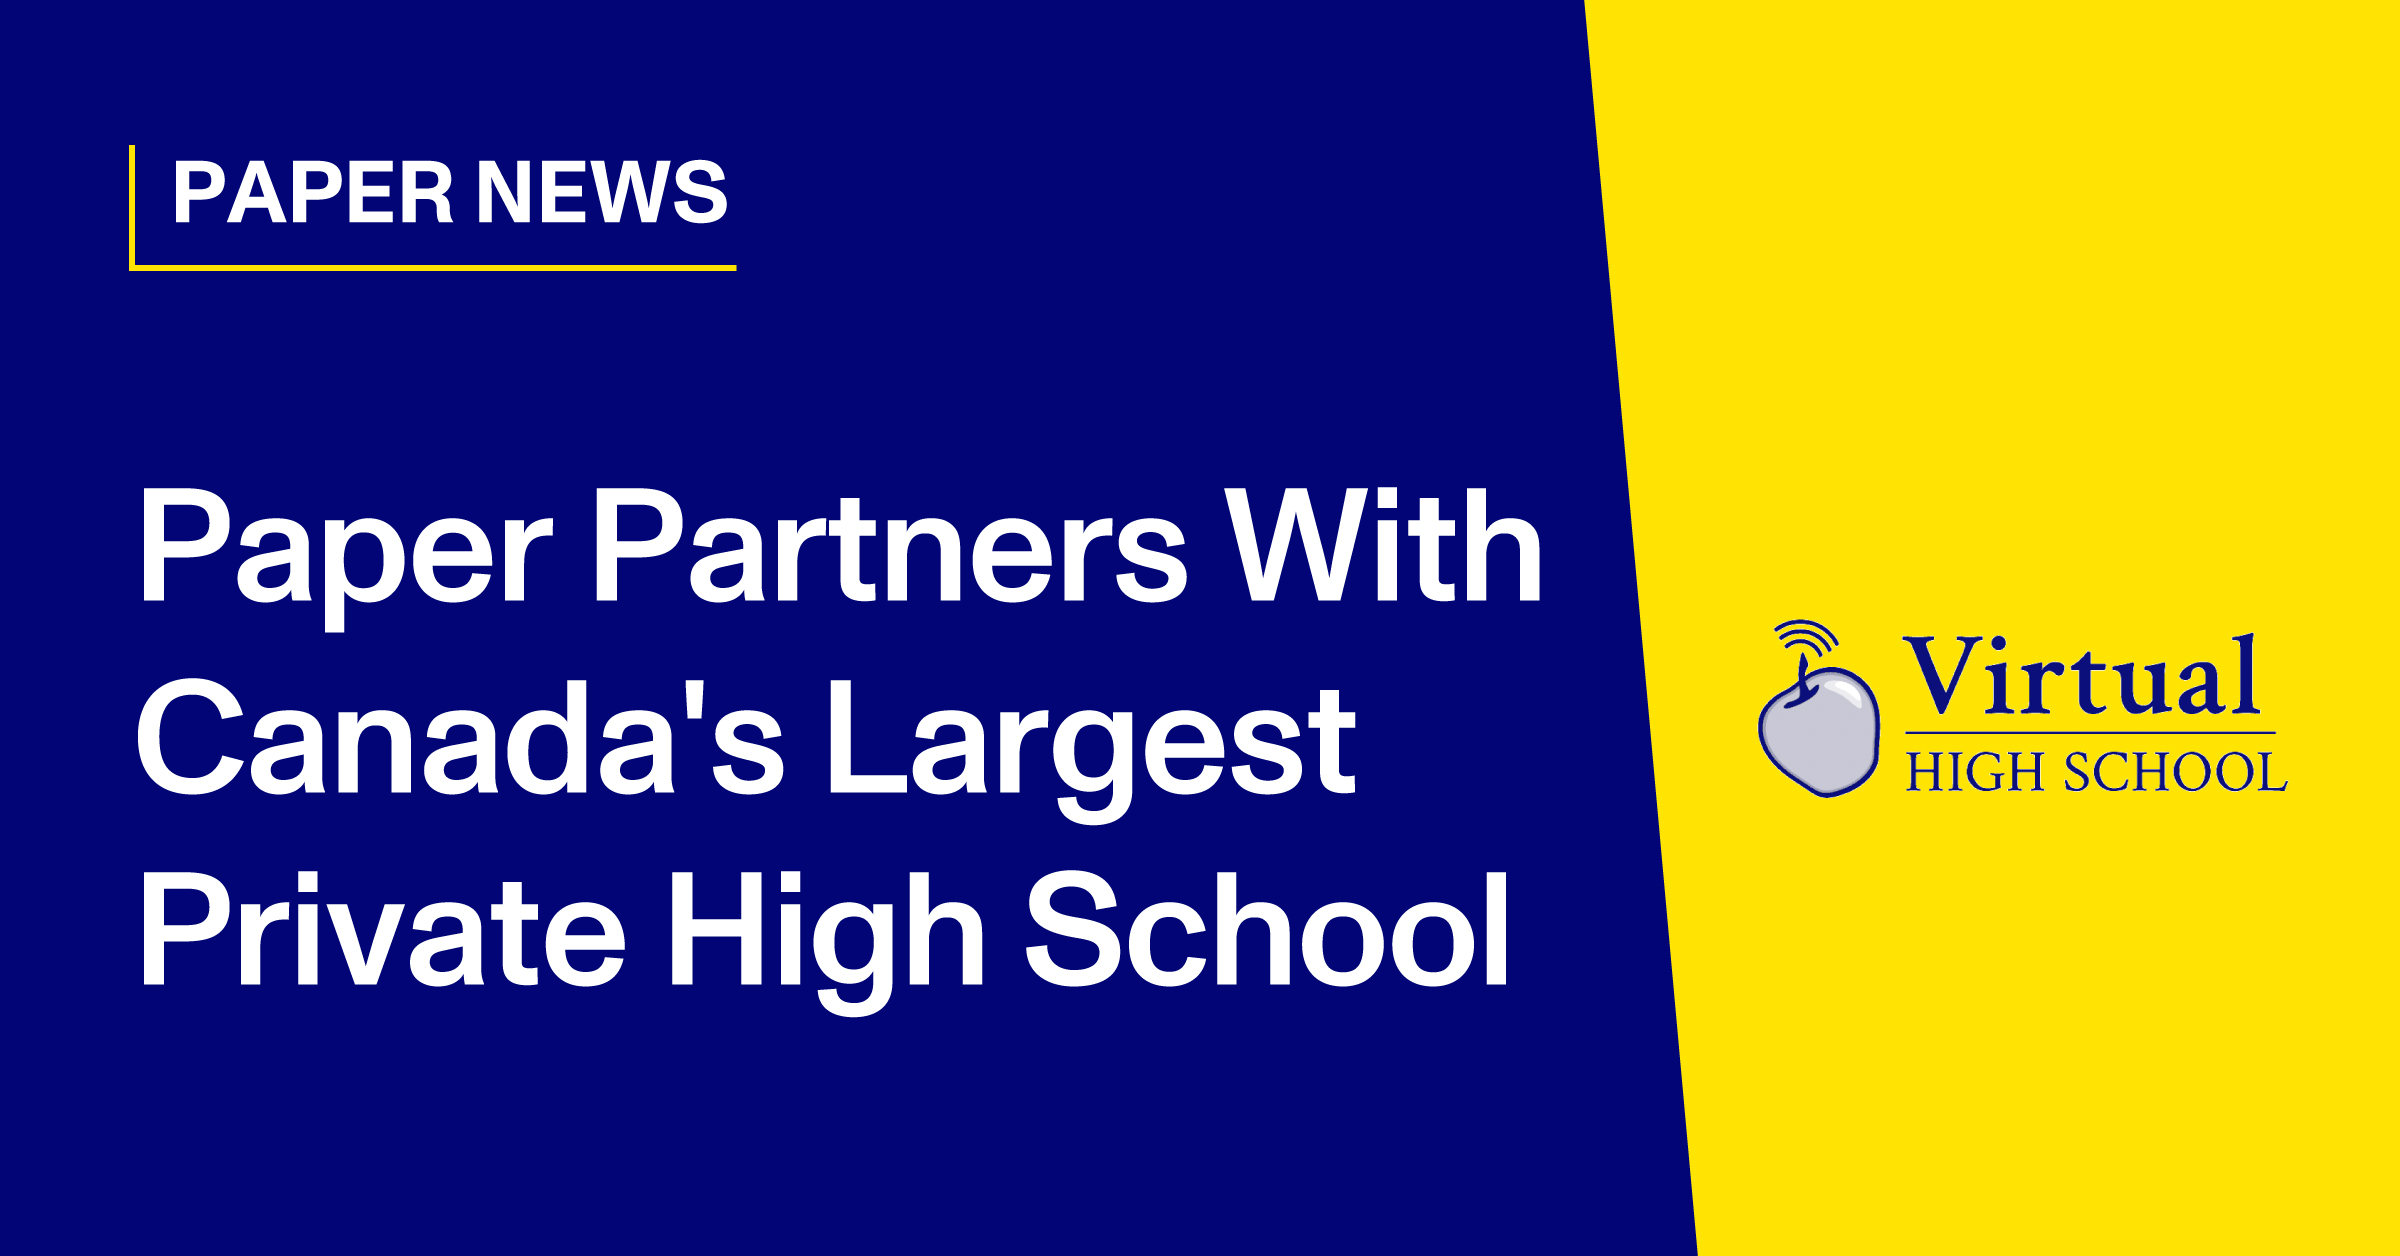 Paper Partners With Canada's Largest Private High School